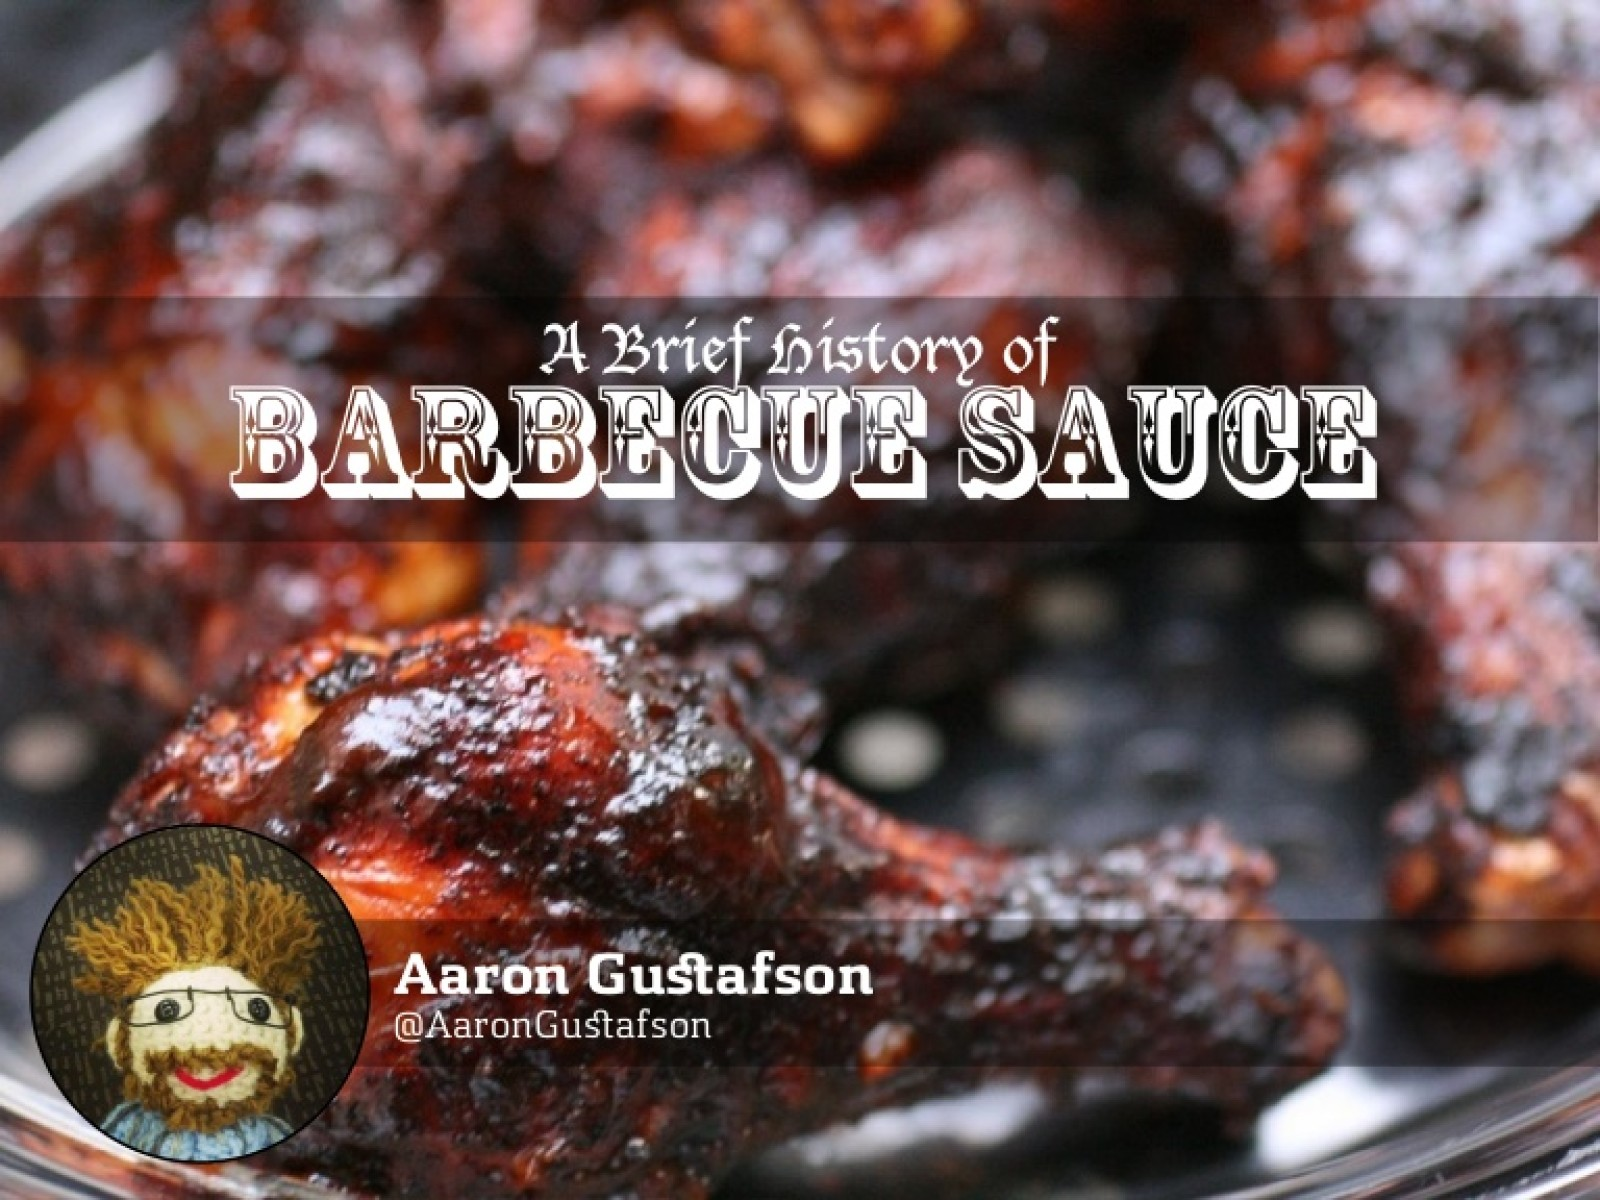 A Brief History of Barbecue Sauce